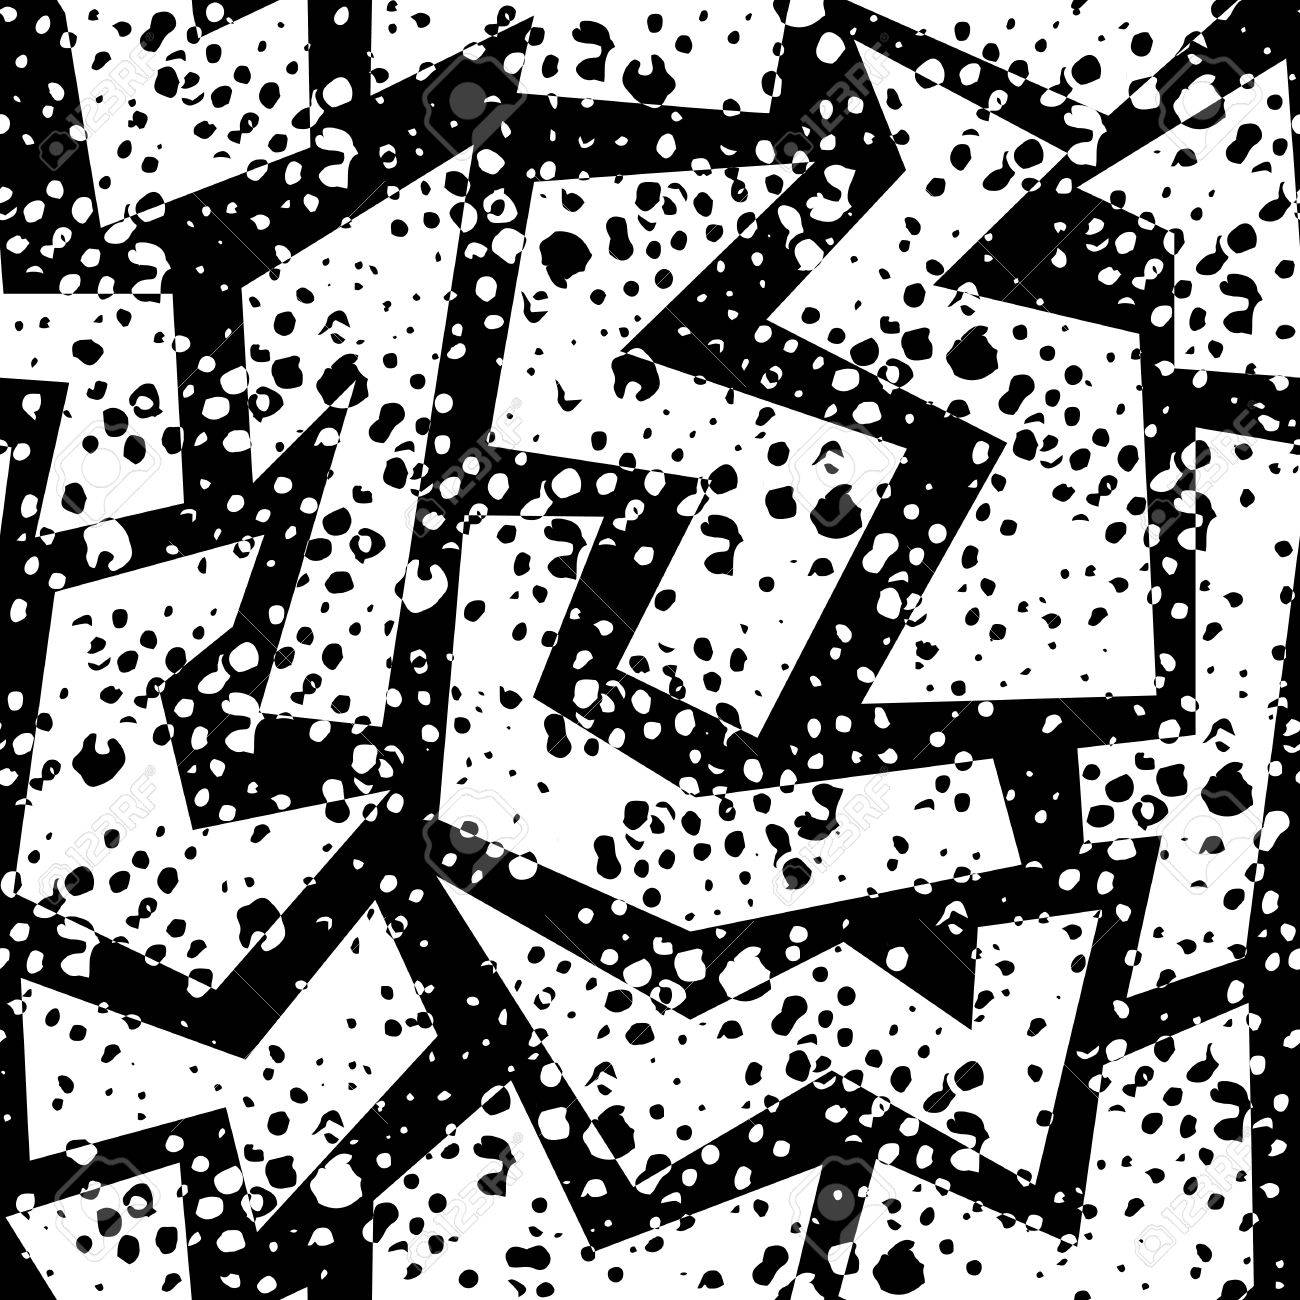 Black And White Retro 80s Seamless Pattern With Geometric Shapes ... for Geometric Shapes Design Black And White  557yll